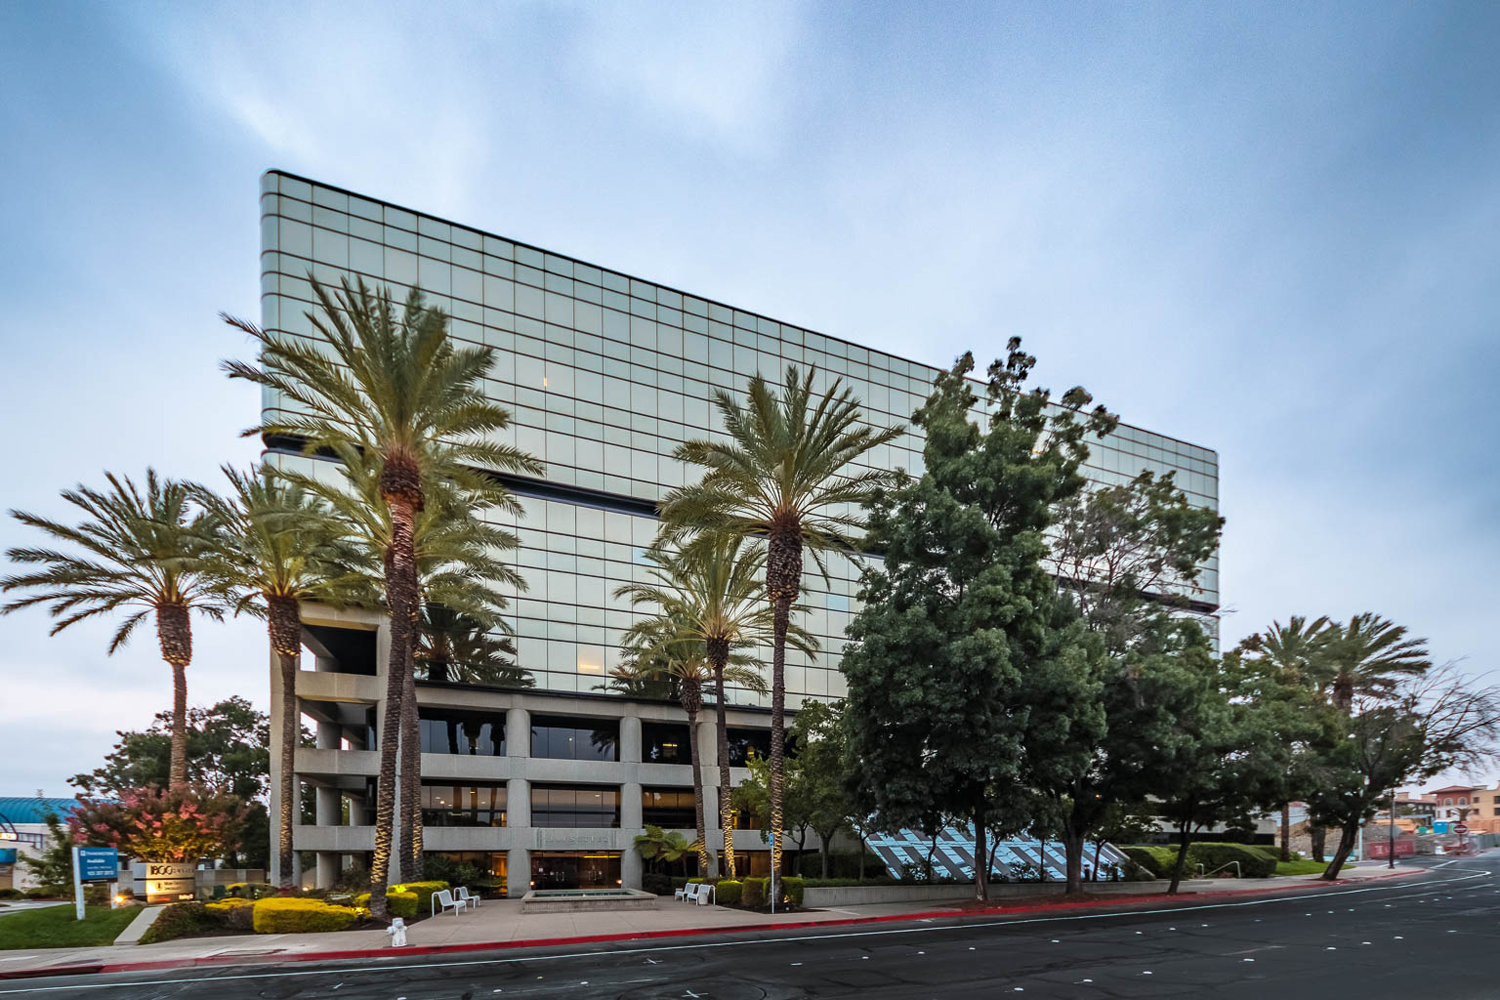 Meridian Sells 175,000 SF Office Building in Contra Costa County for $31 Million 8